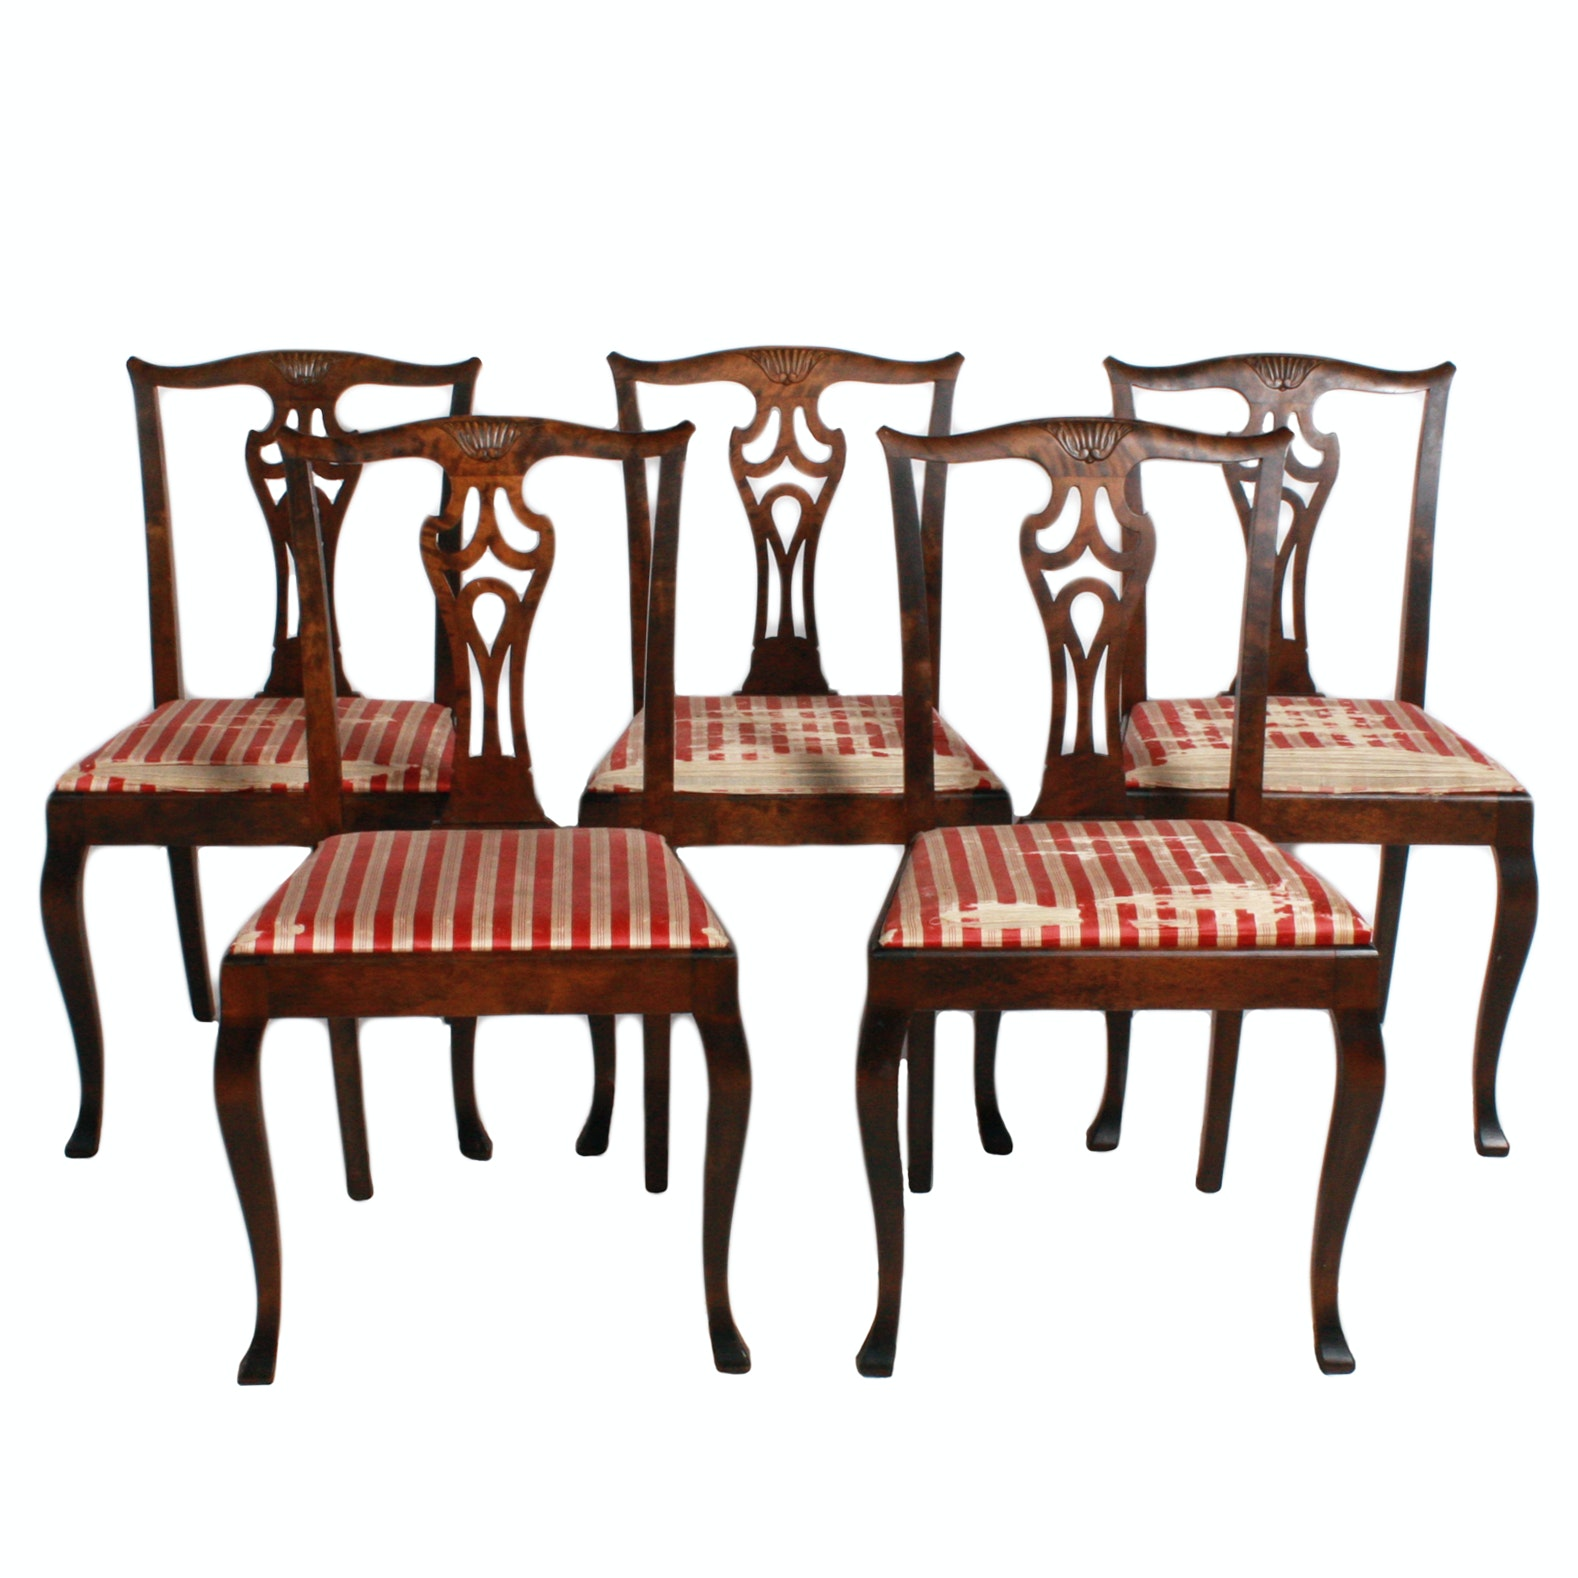 Set of Vintage Chippendale Style Dining Chairs